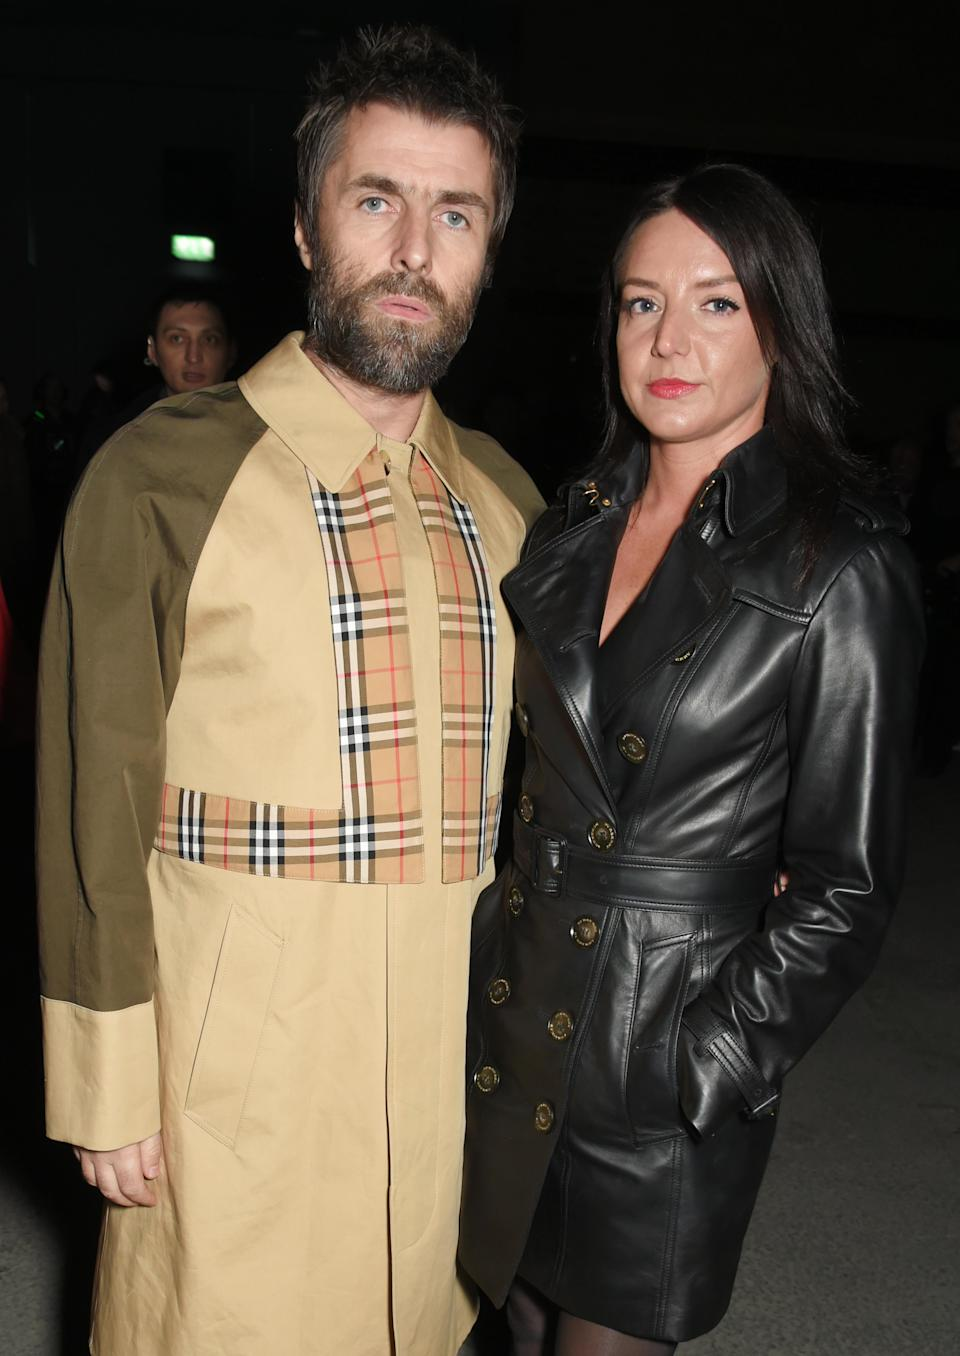 Liam Gallagher and Debbie Gwyther were due to marry in Italy this summer. (Getty Images for Burberry)